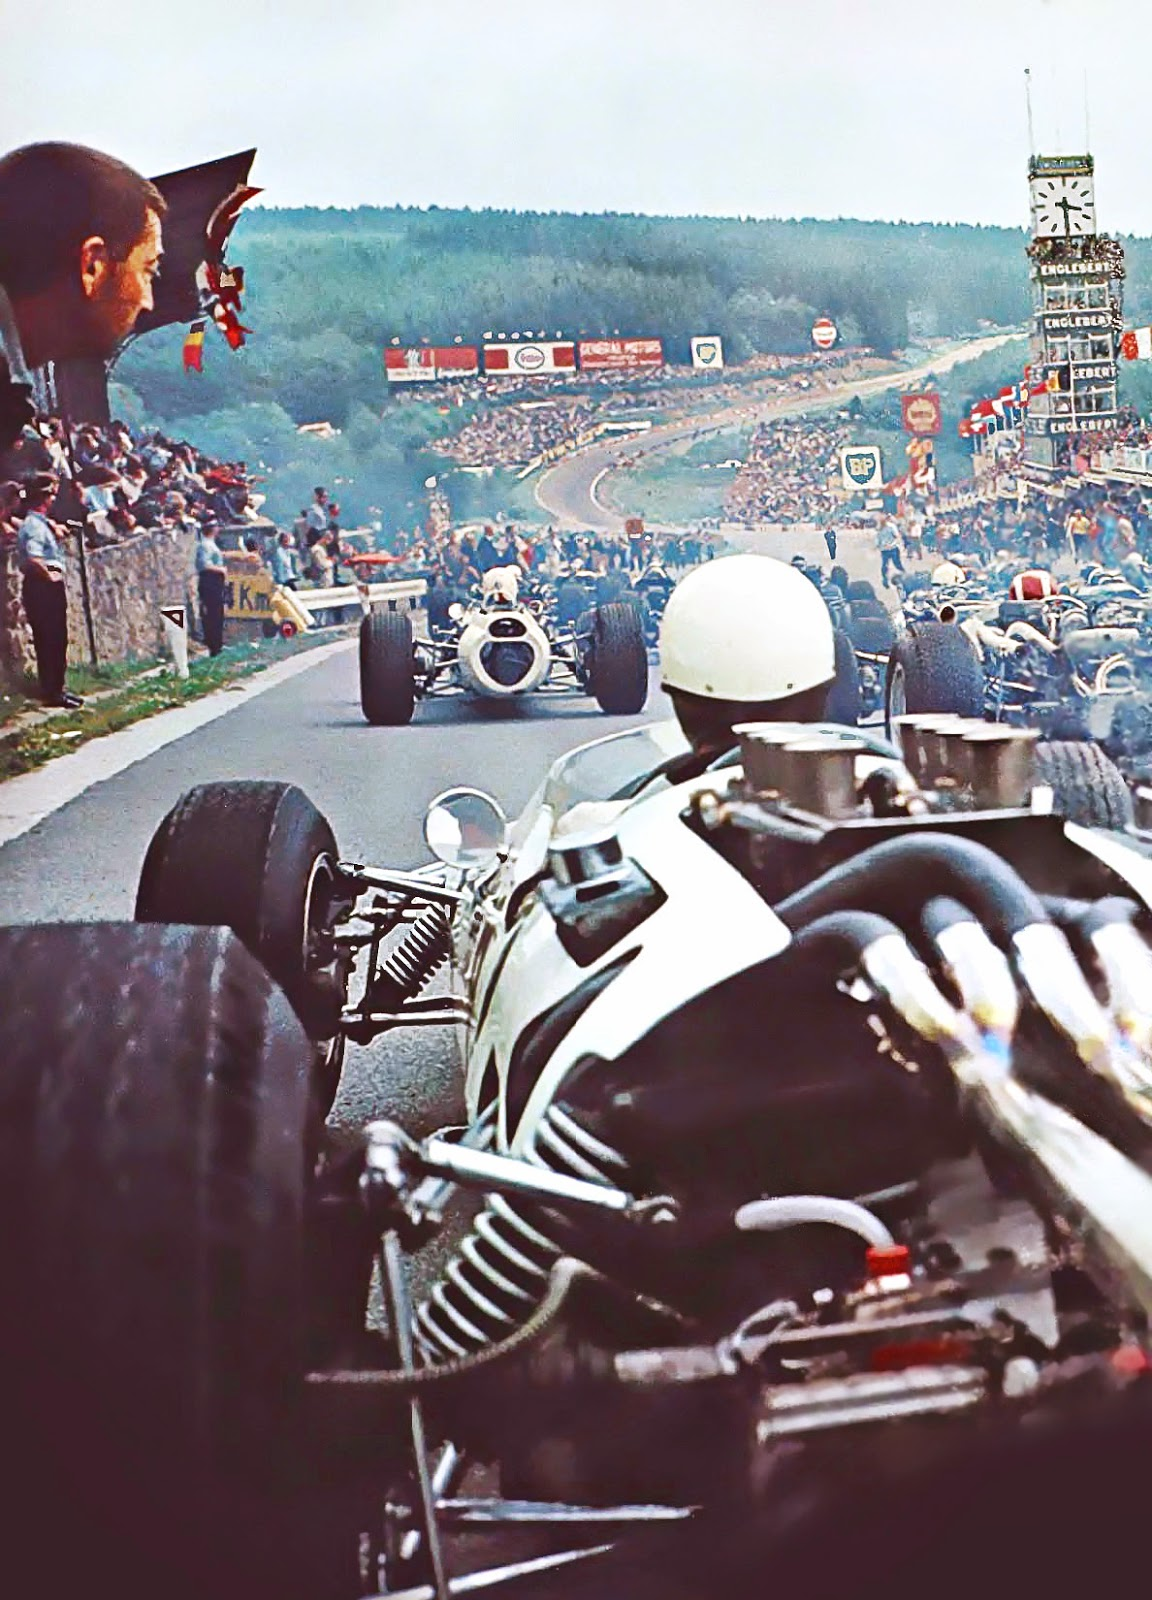 10 Best Places to Holiday in Belgium (100+ Photos) | Vintage F1 in Spa